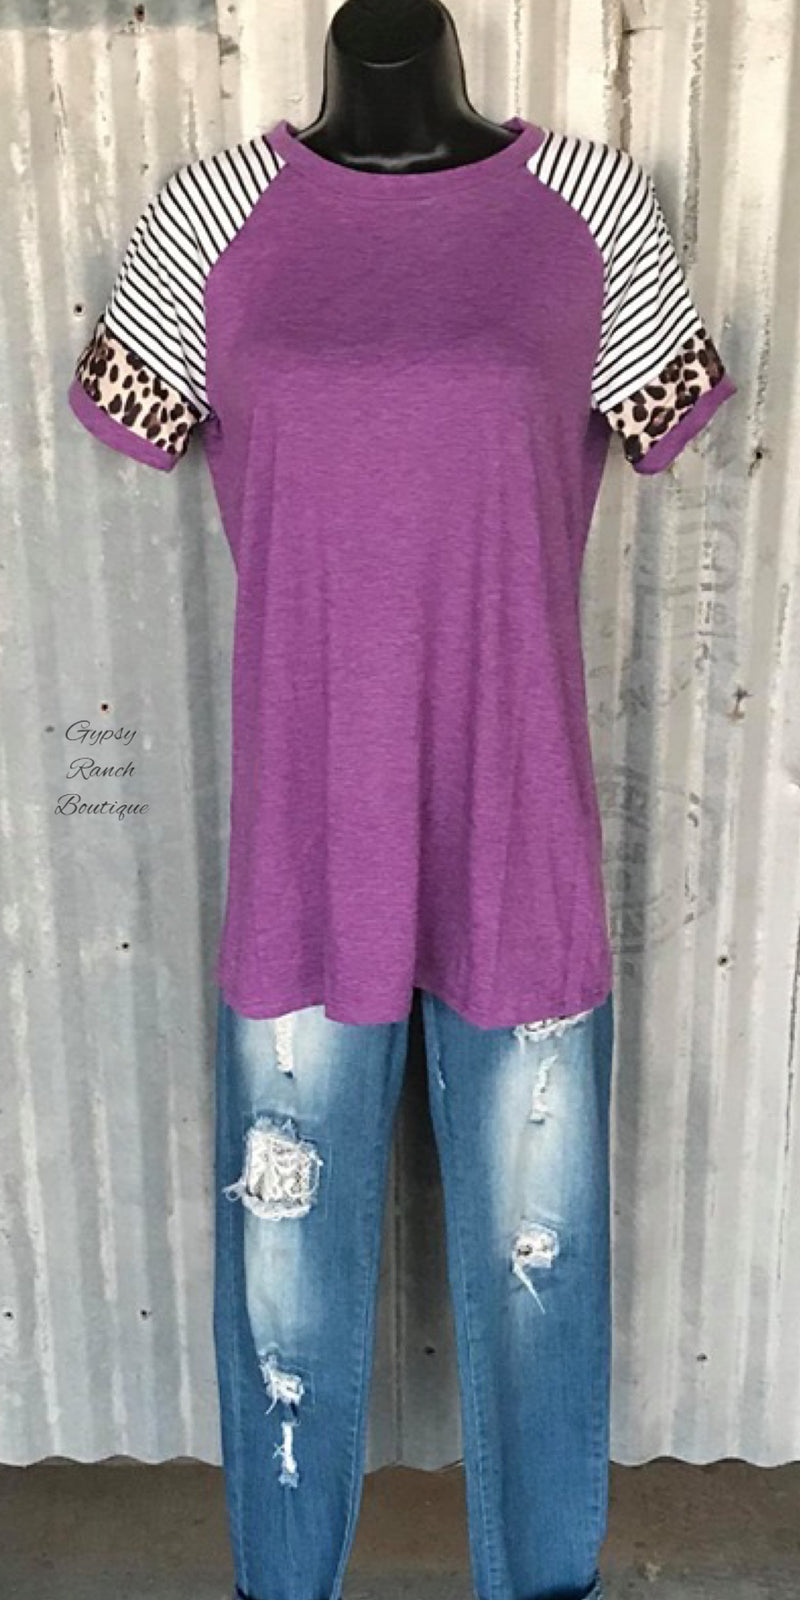 Artesia Sky Purple Leopard Top - Also in Plus Size